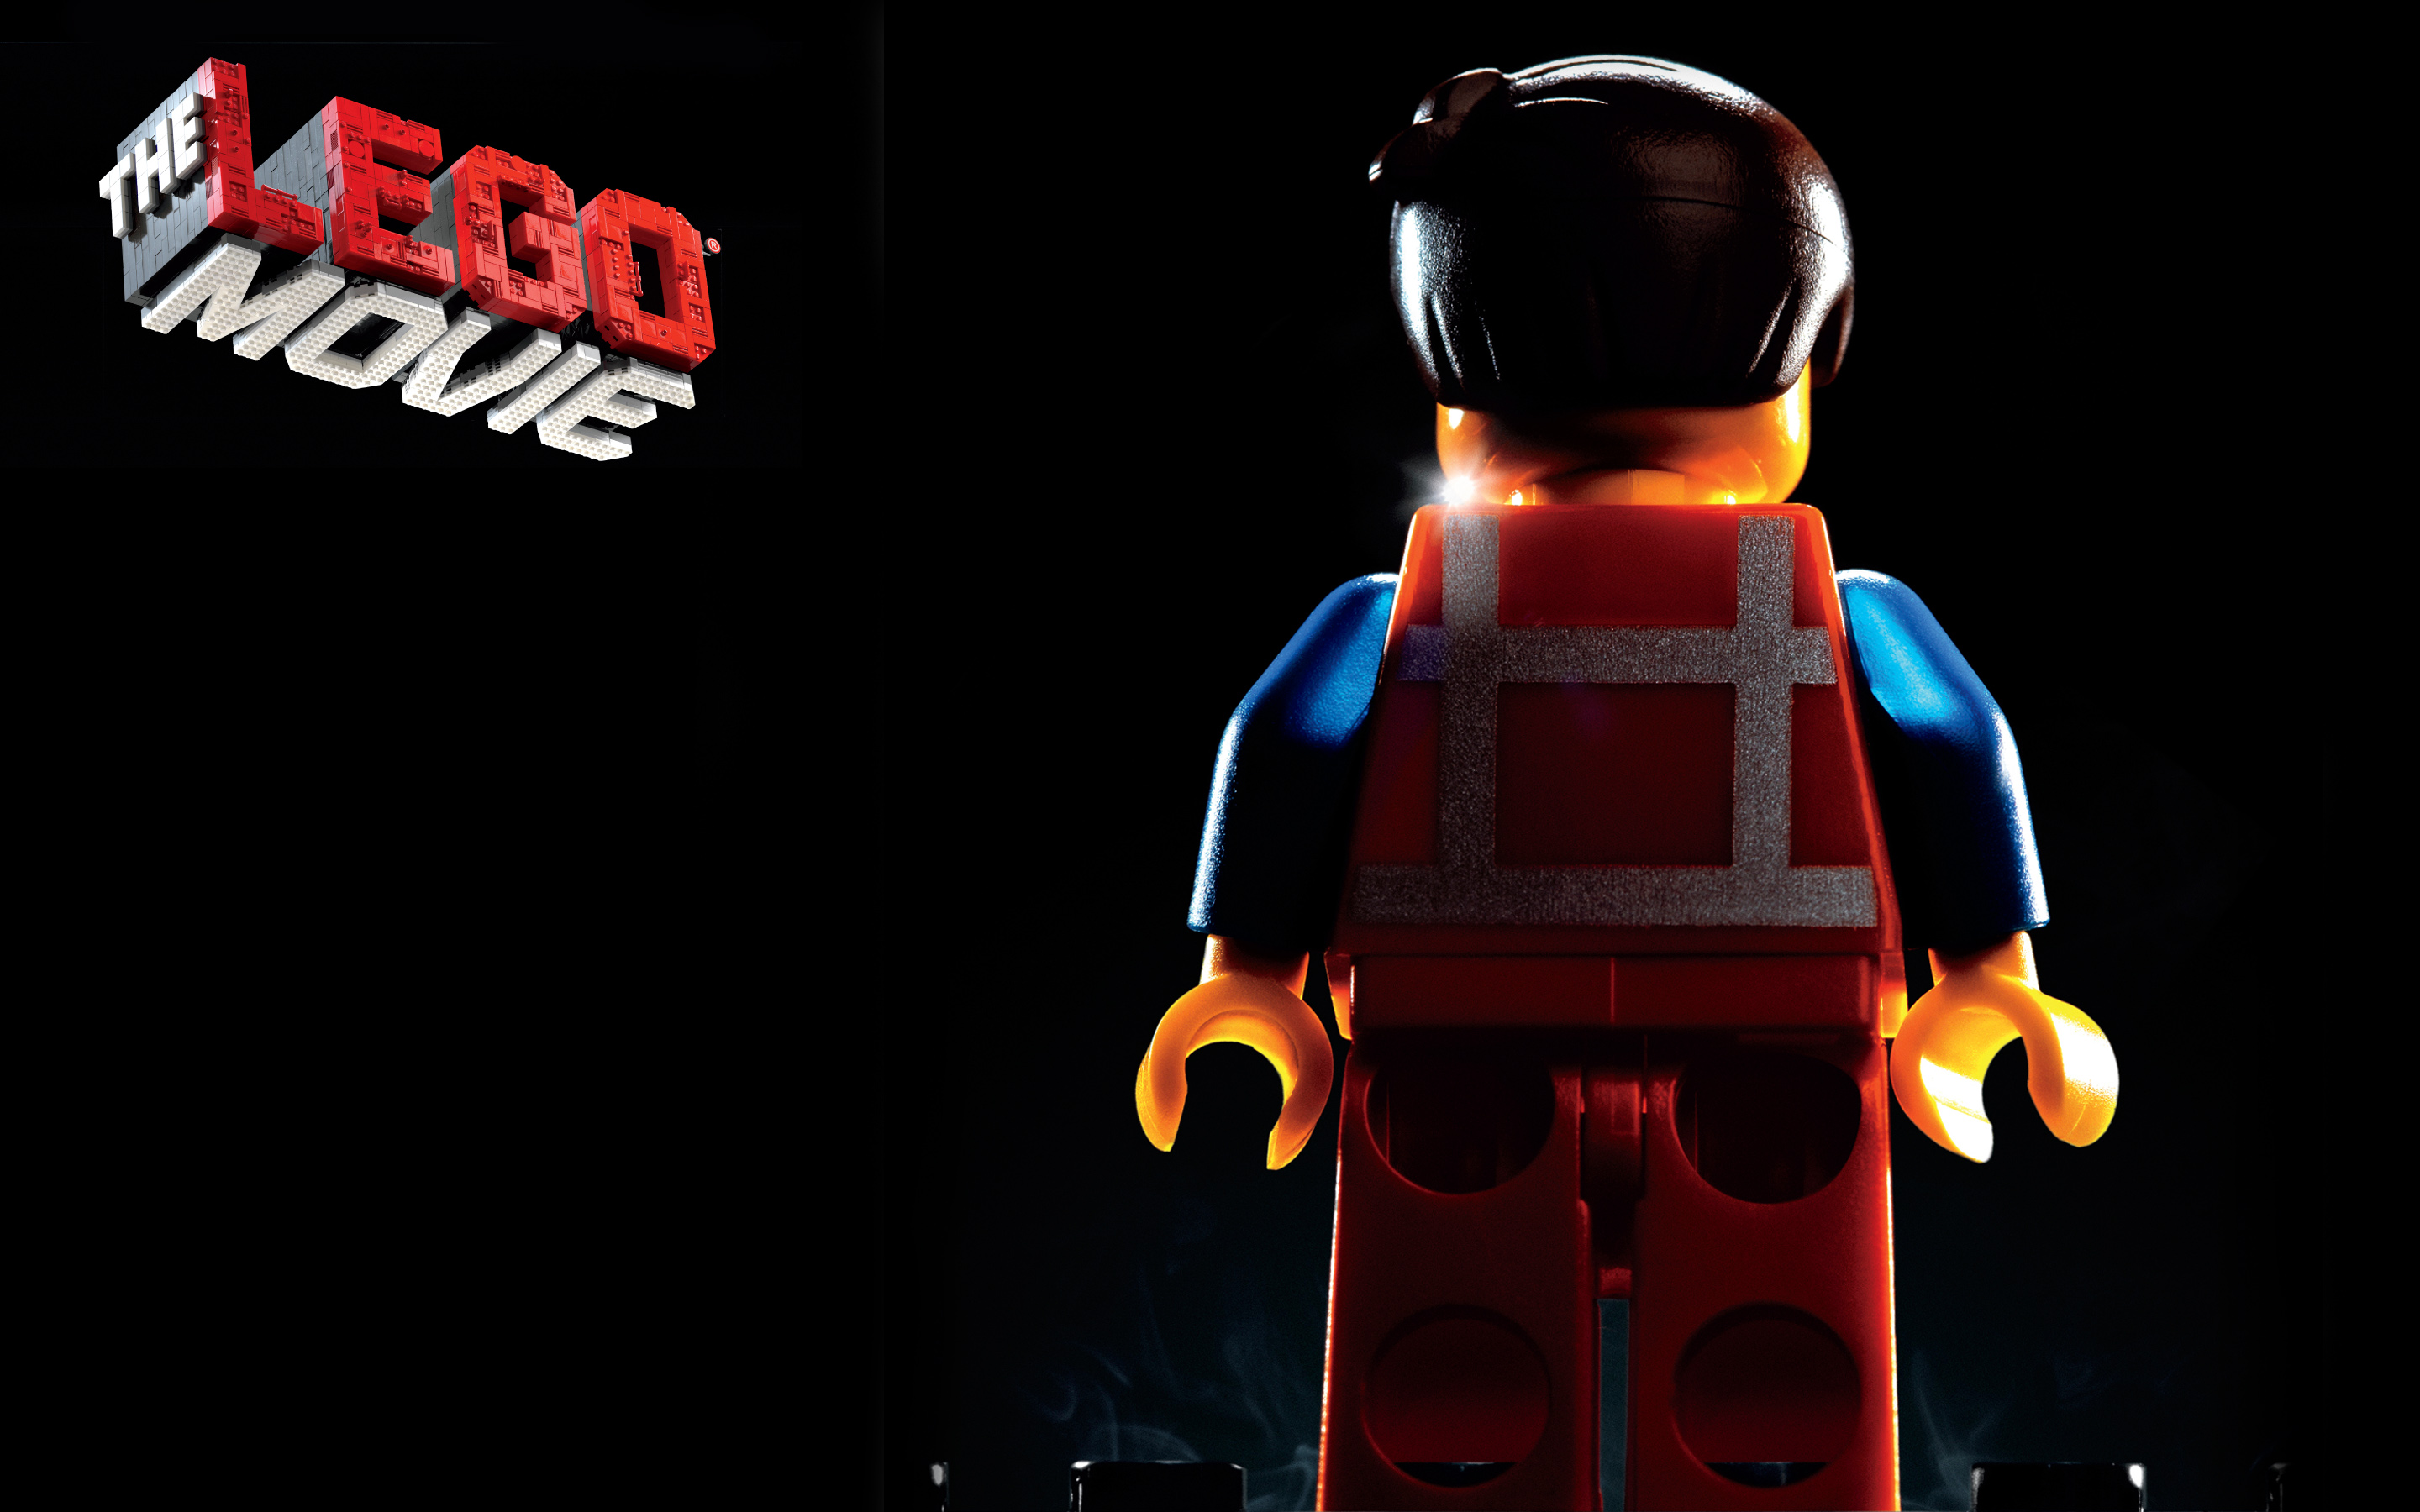 How They Made The Lego Movie 30 Minute Video About The Making Of Lego Movie ブログドットテレビ